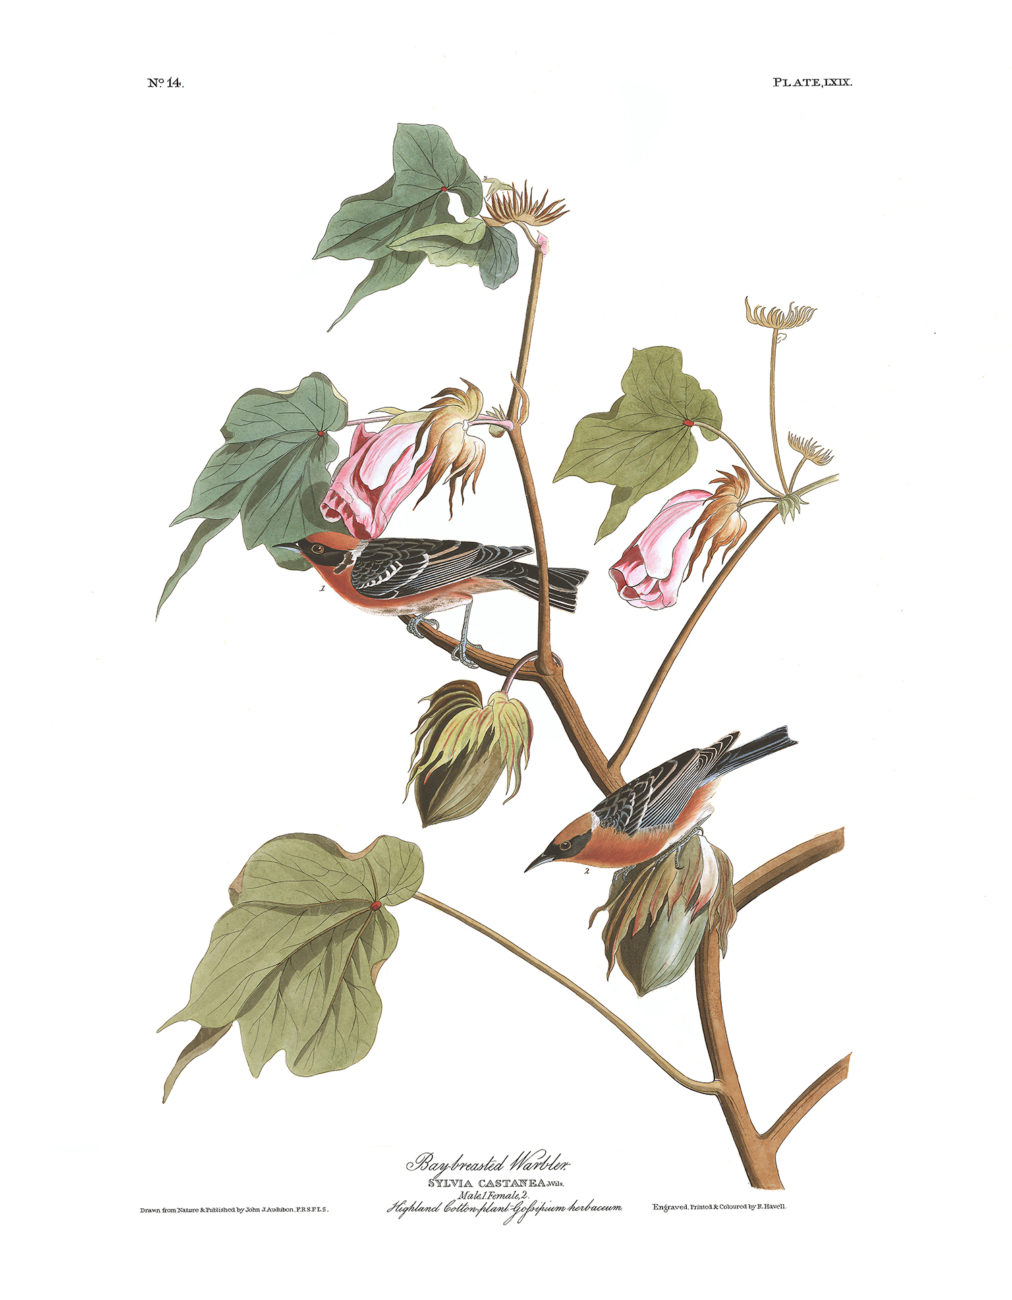 Plate 69 - Bay Breasted Warbler